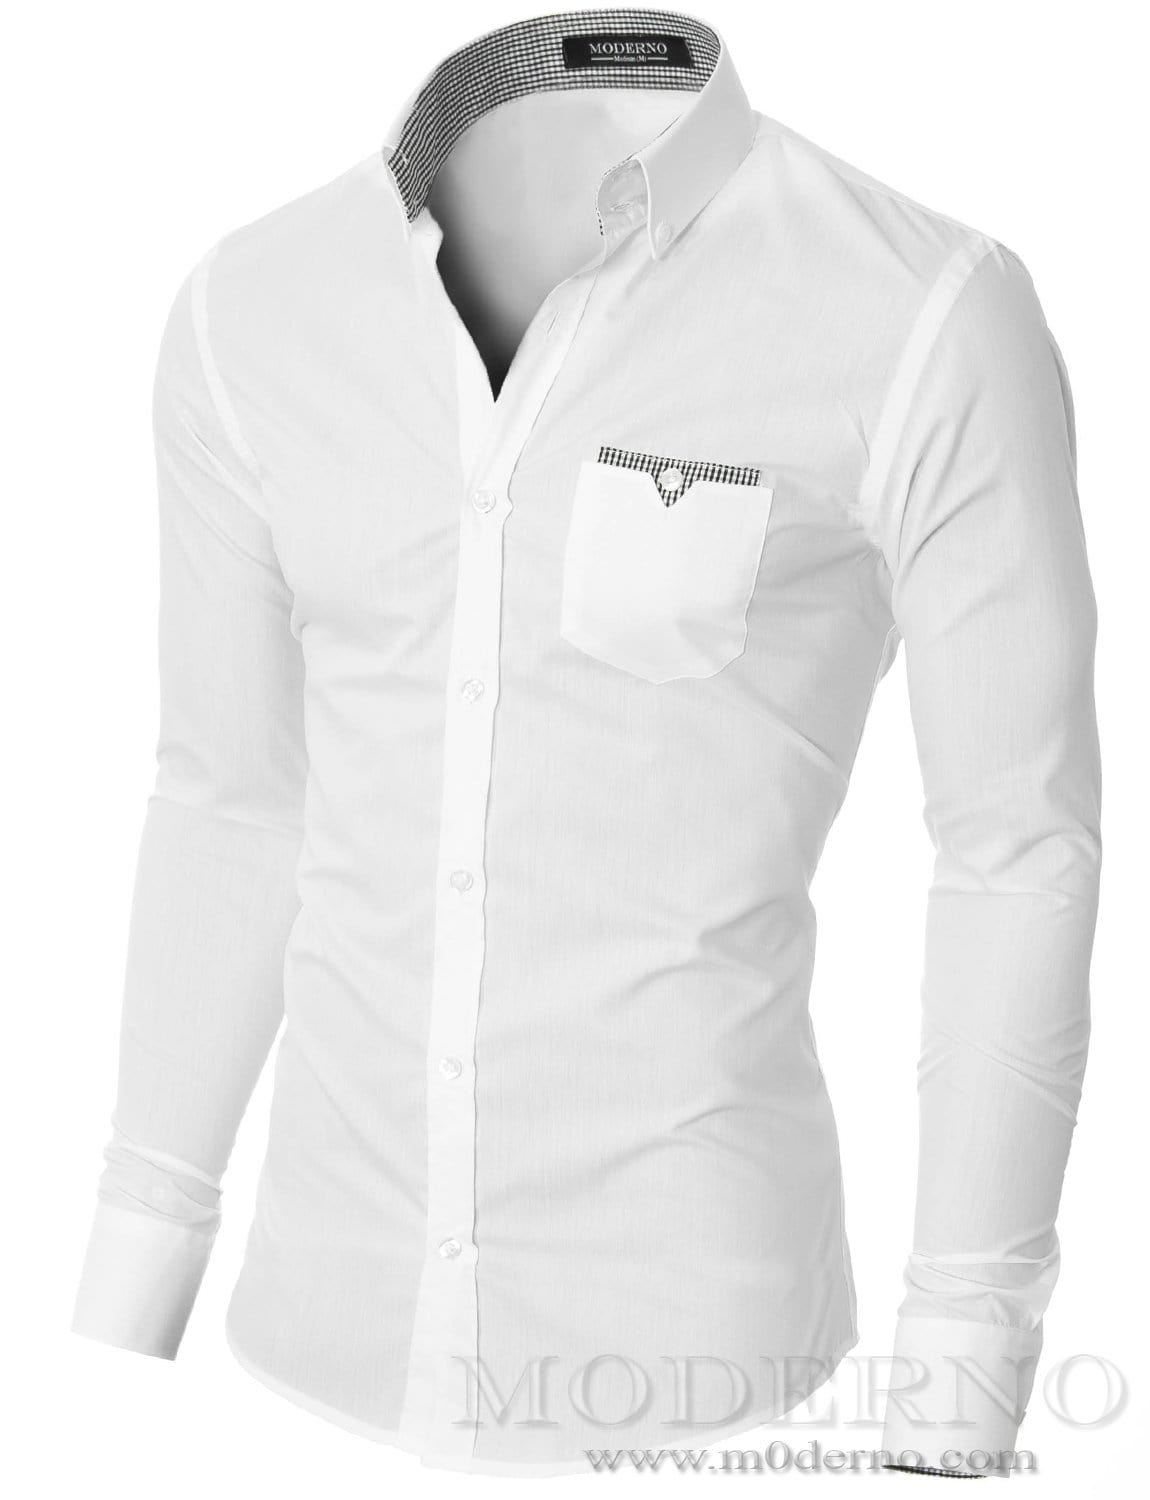 Mens button down white shirt with one pocket by moderno for Mens white button down dress shirts